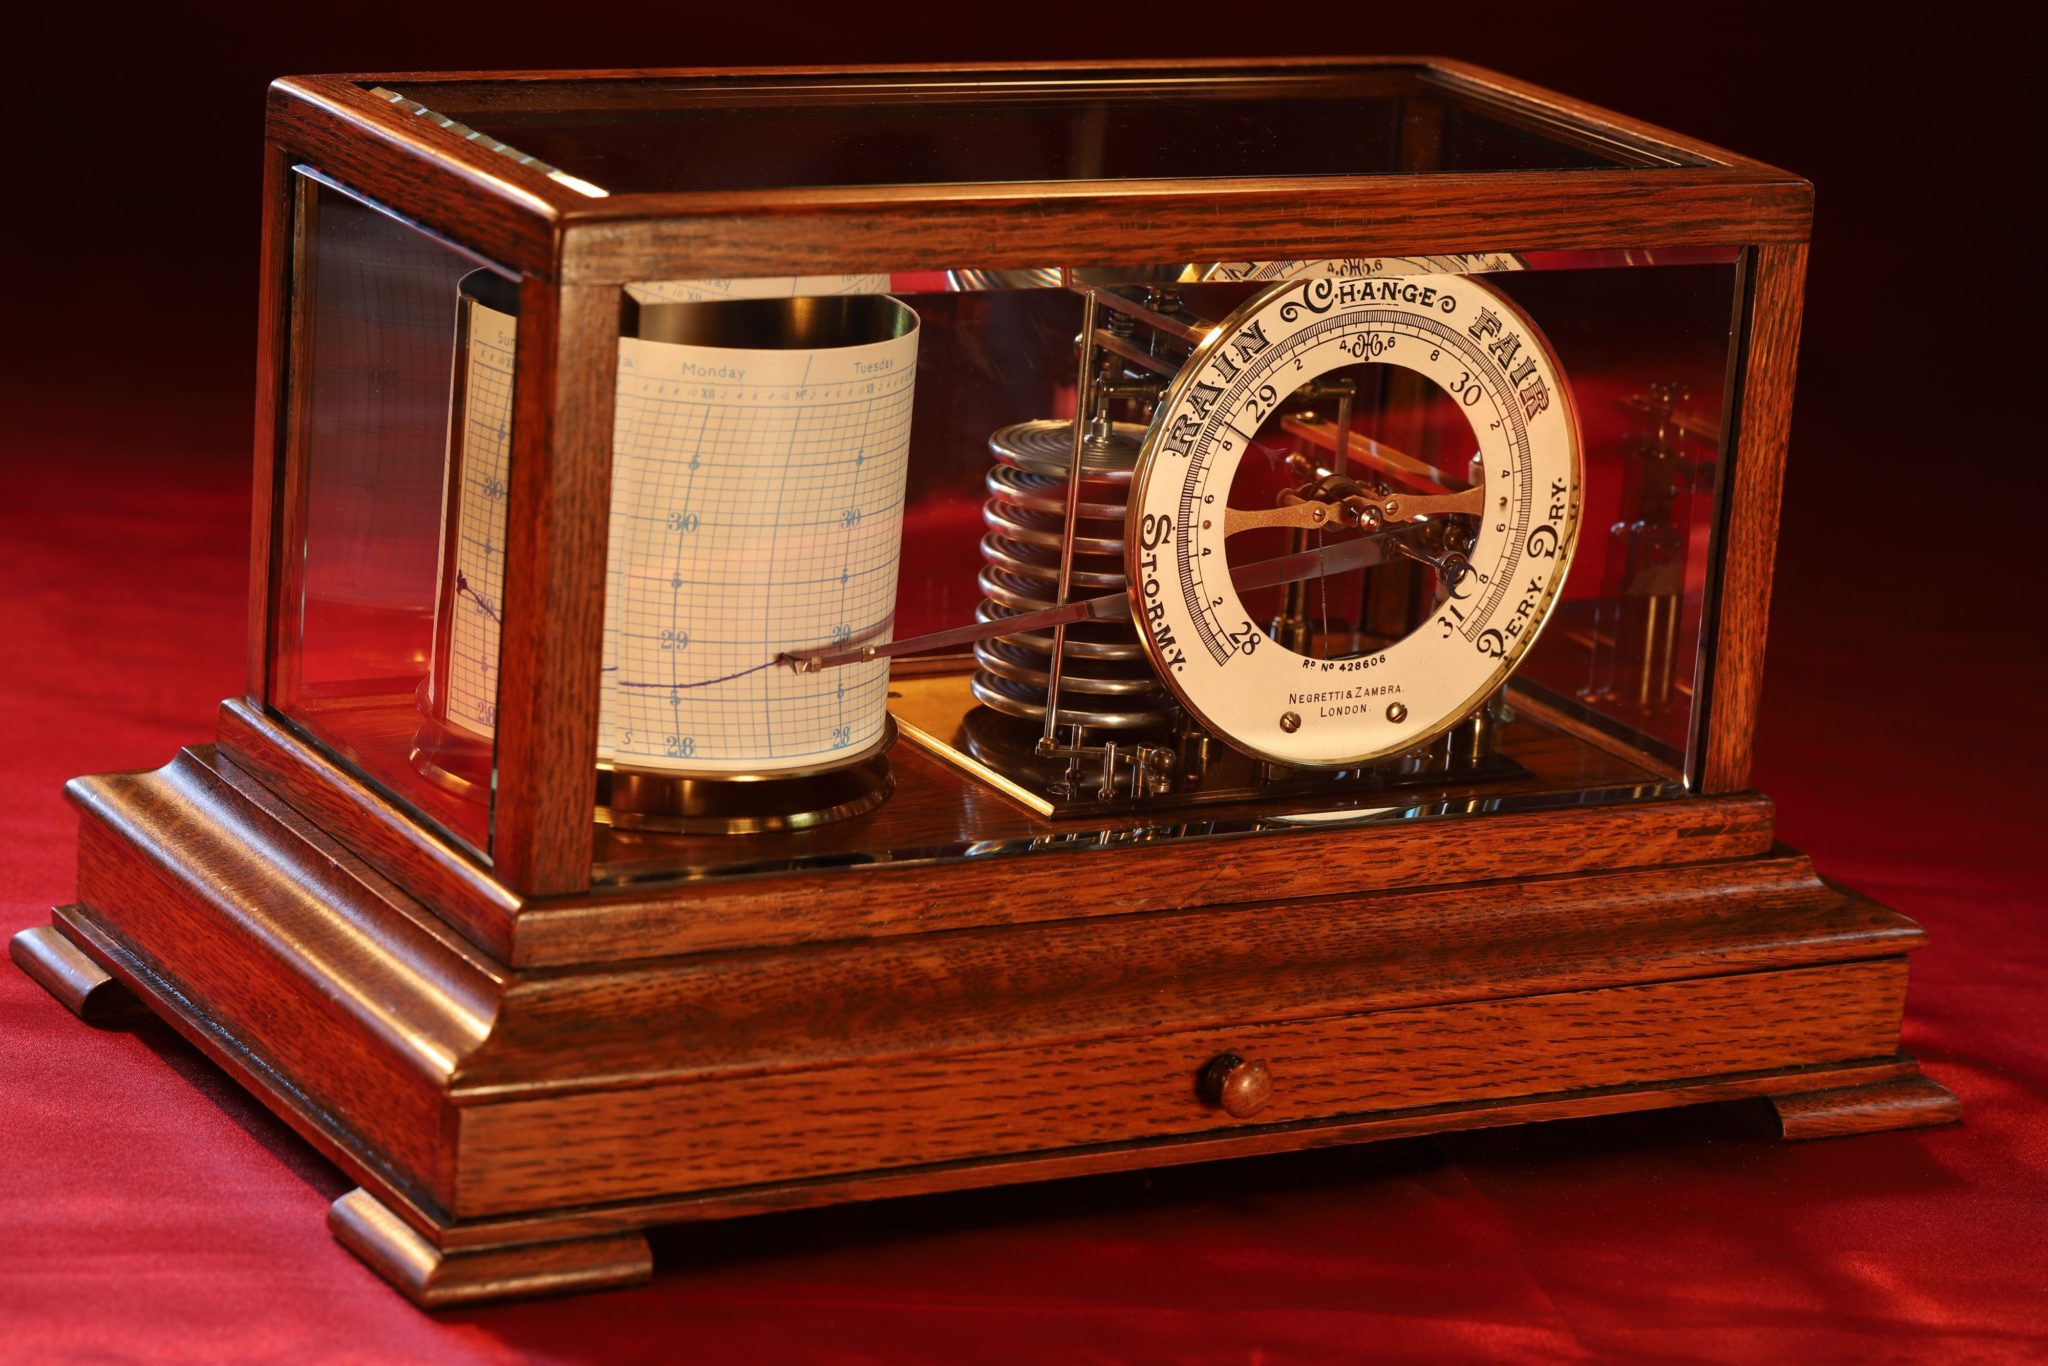 Image of Negretti & Zambra Barograph No 468